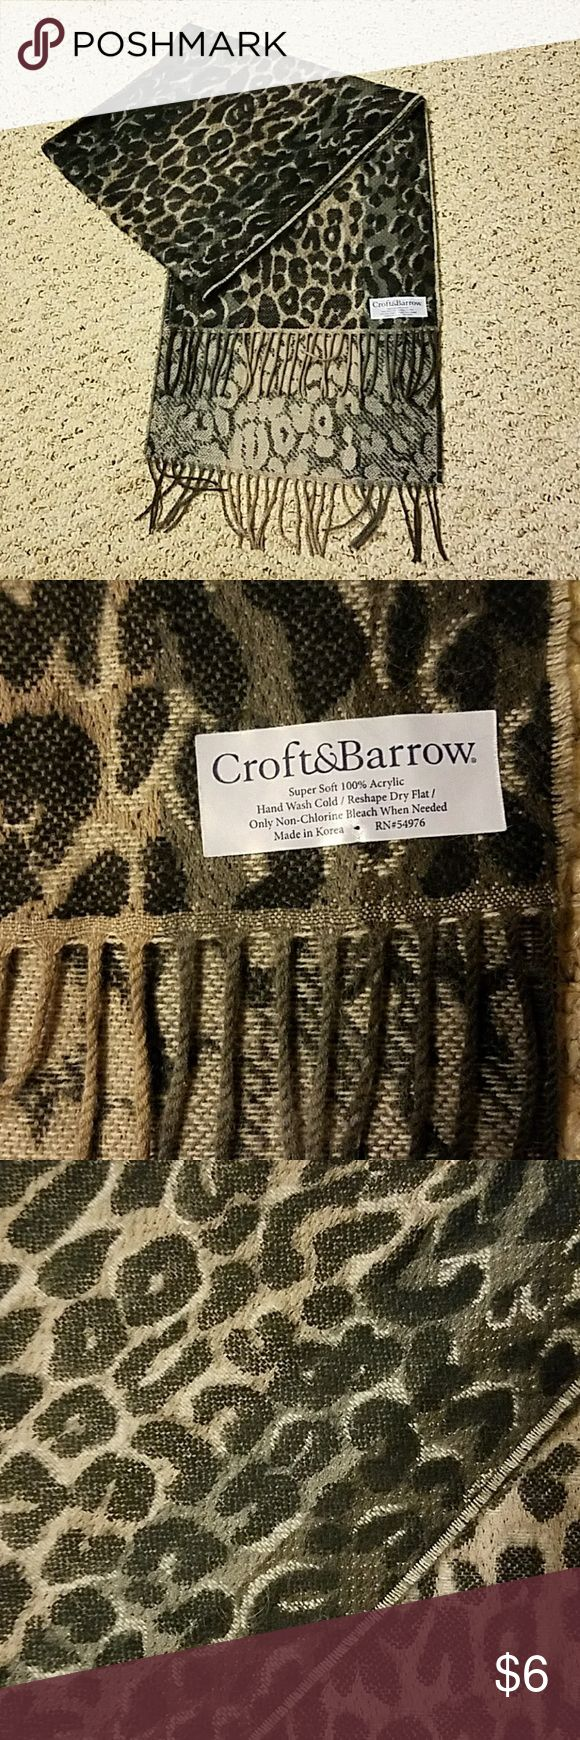 Croft & Barrow Cheetah Scarf Super soft never worn cheetah print scarf. Tones of black and gray in color. Let me know if there's any questions! croft & barrow Accessories Scarves & Wraps